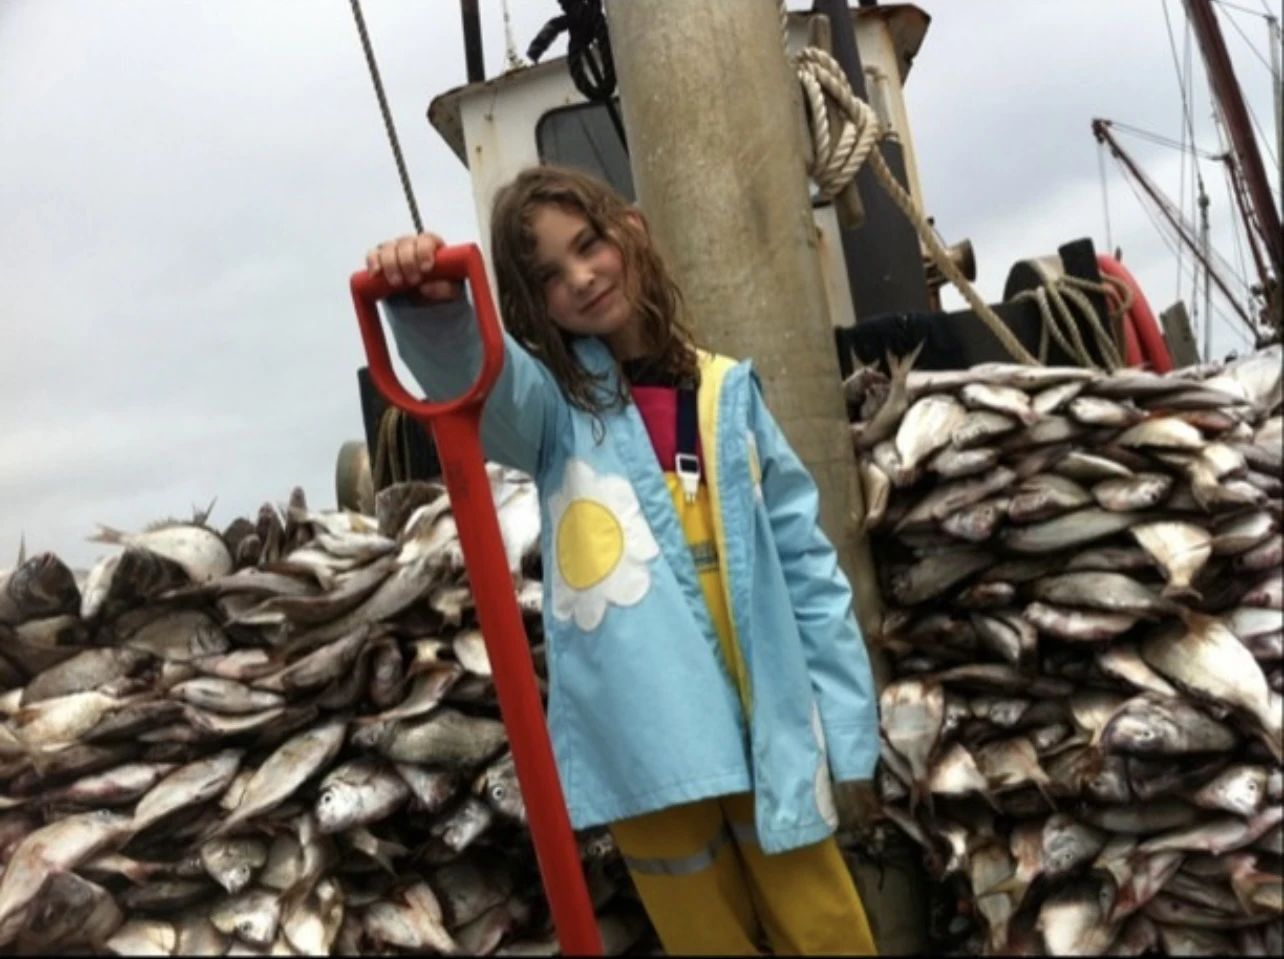 Olivia unloading a boatload of fish as a little girl.